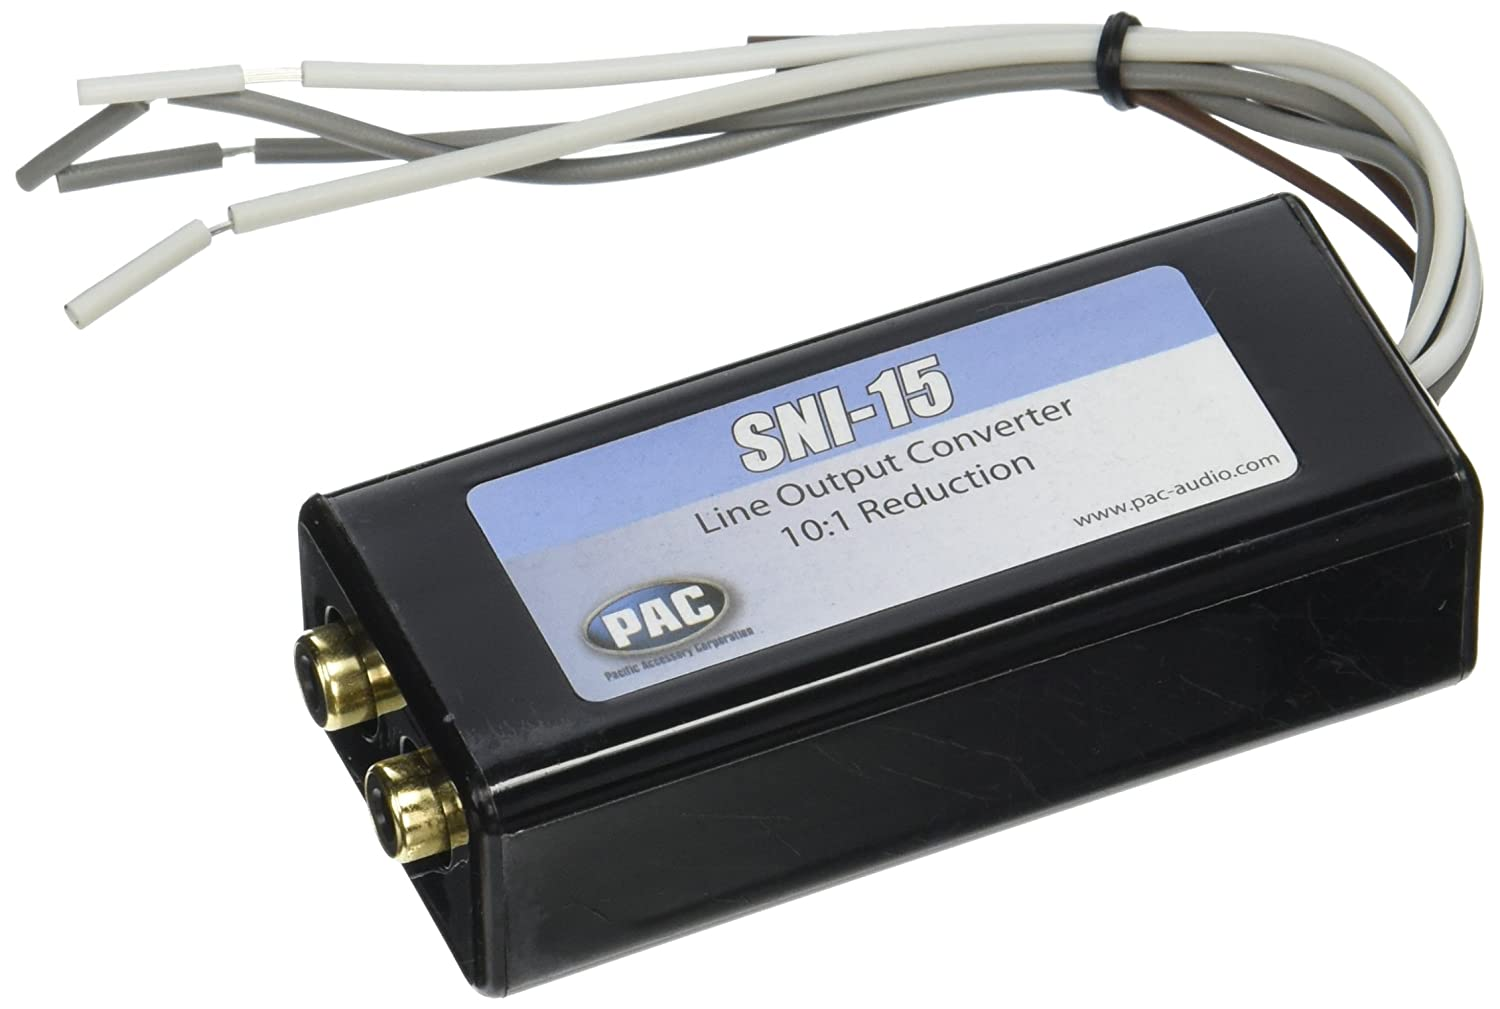 71UQXrYWczL._SL1500_ amazon com pac sni15 line output converter for adding amplifier  at gsmportal.co